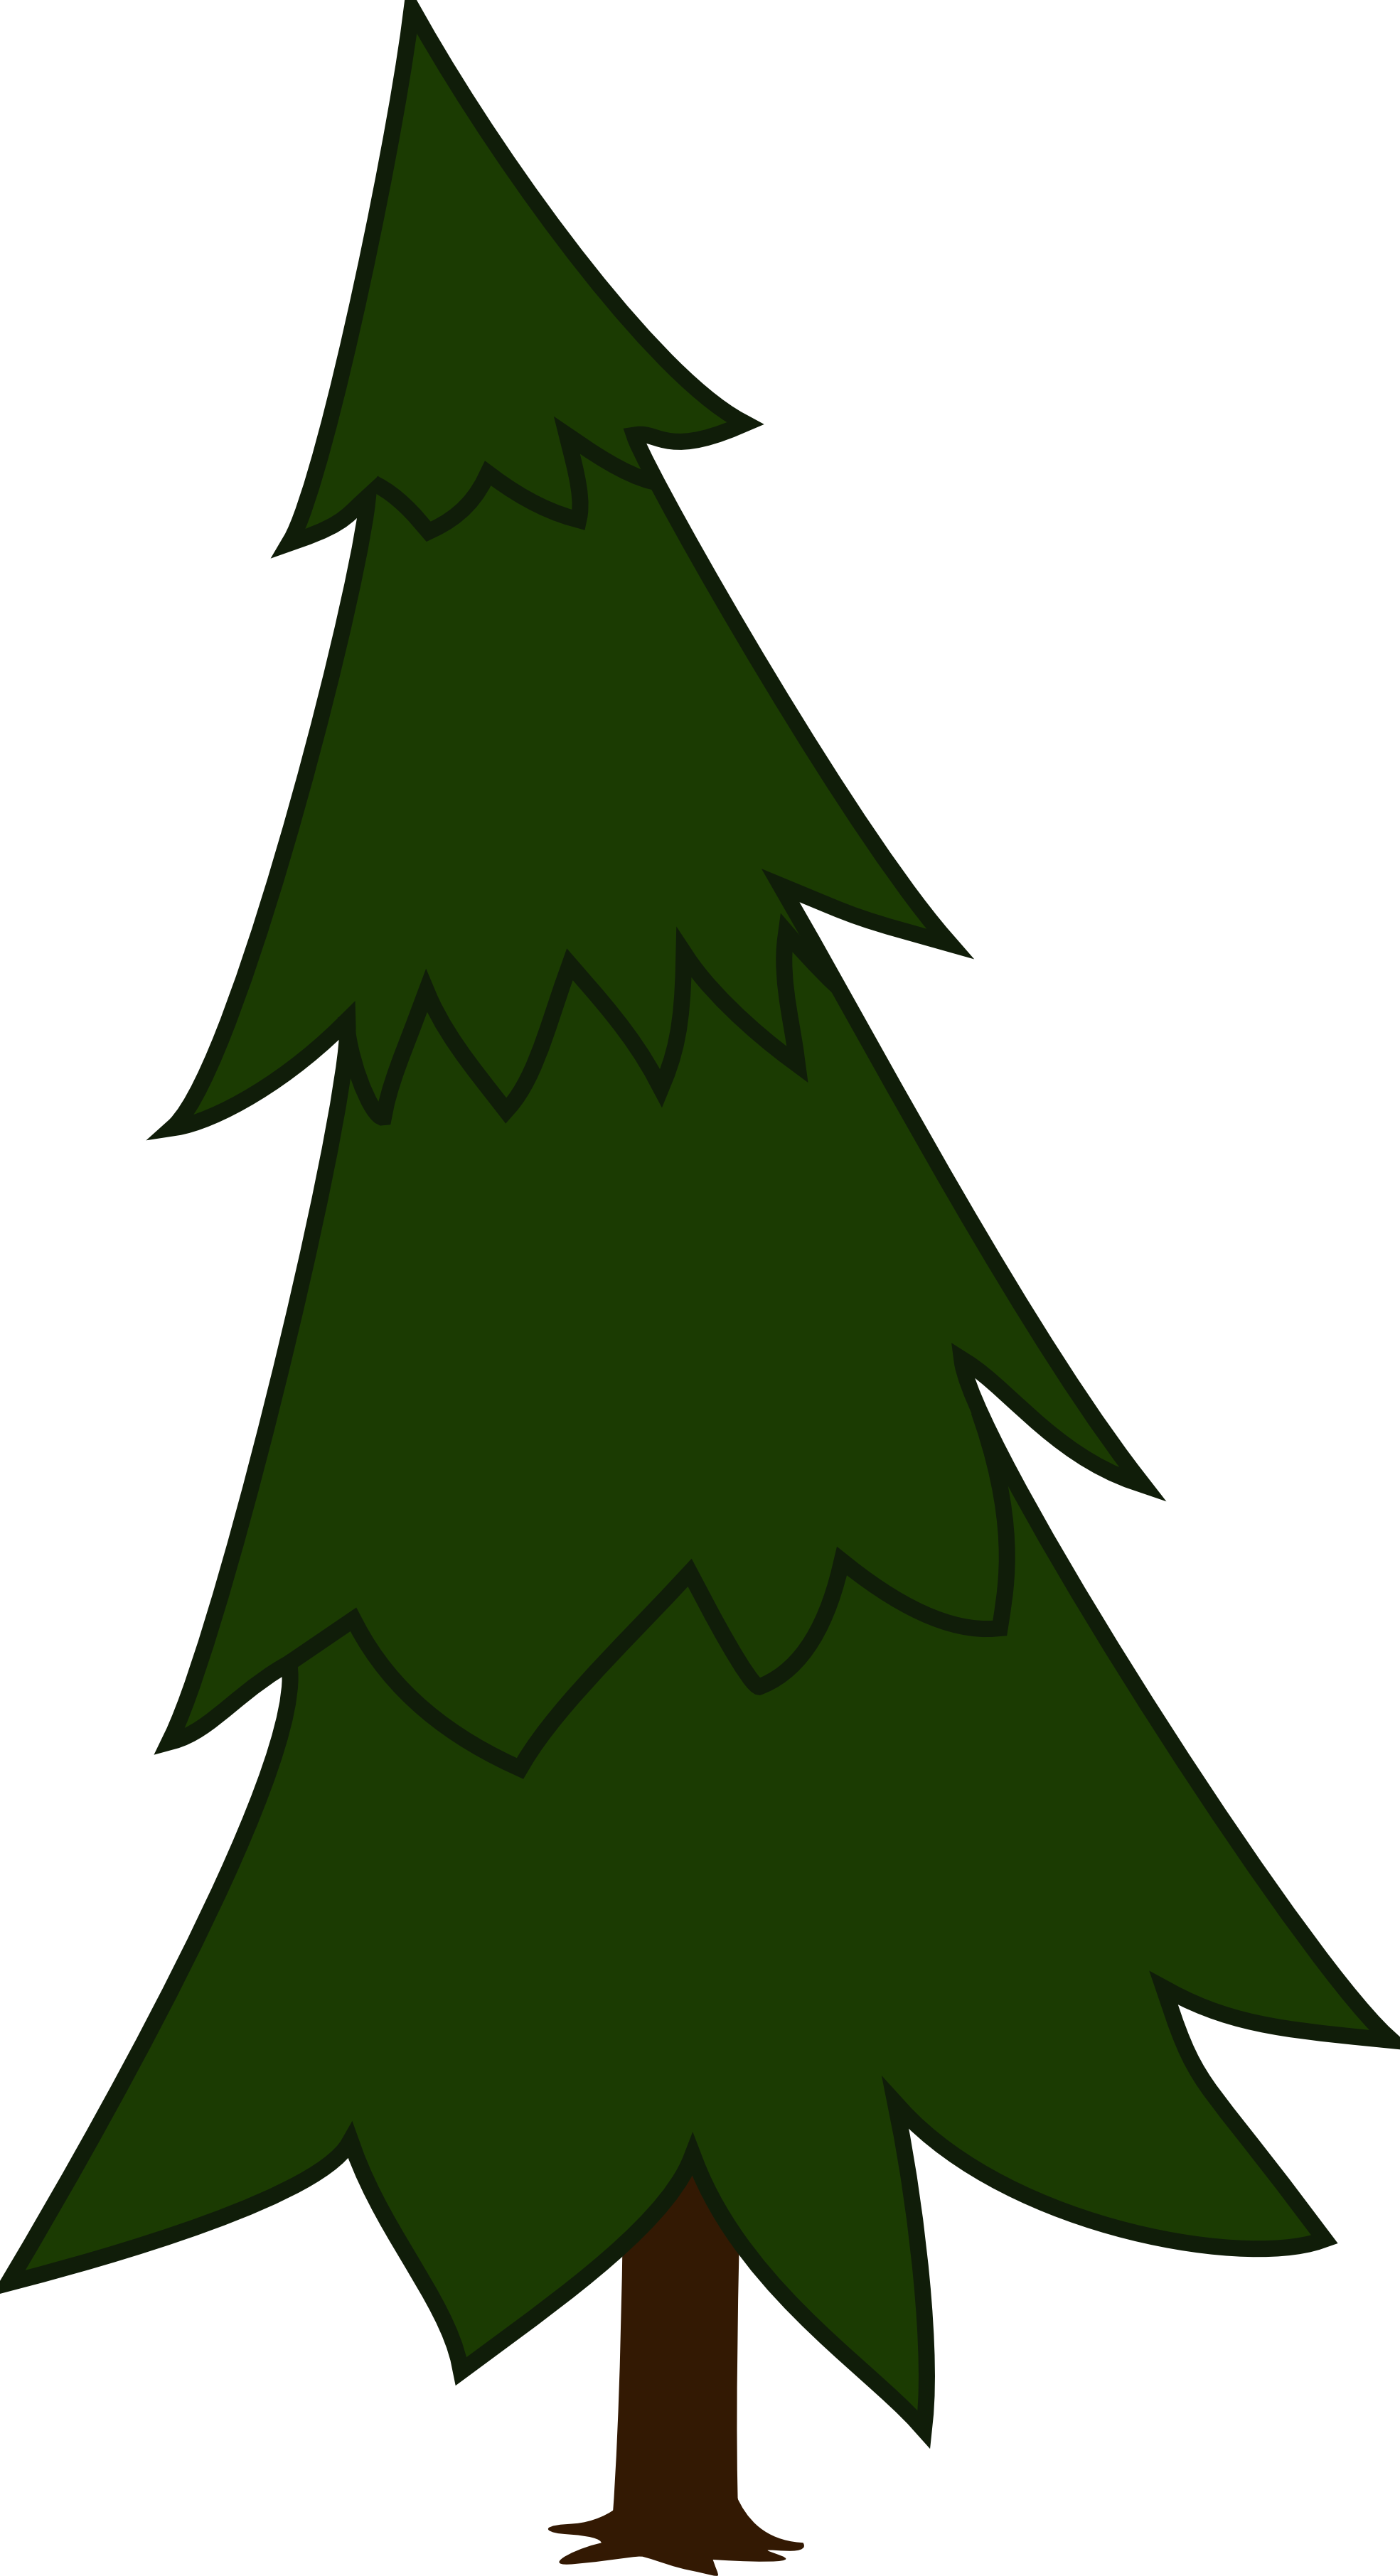 Svg tree clipart png royalty free Christmas tree clip art svg - ClipartFest png royalty free